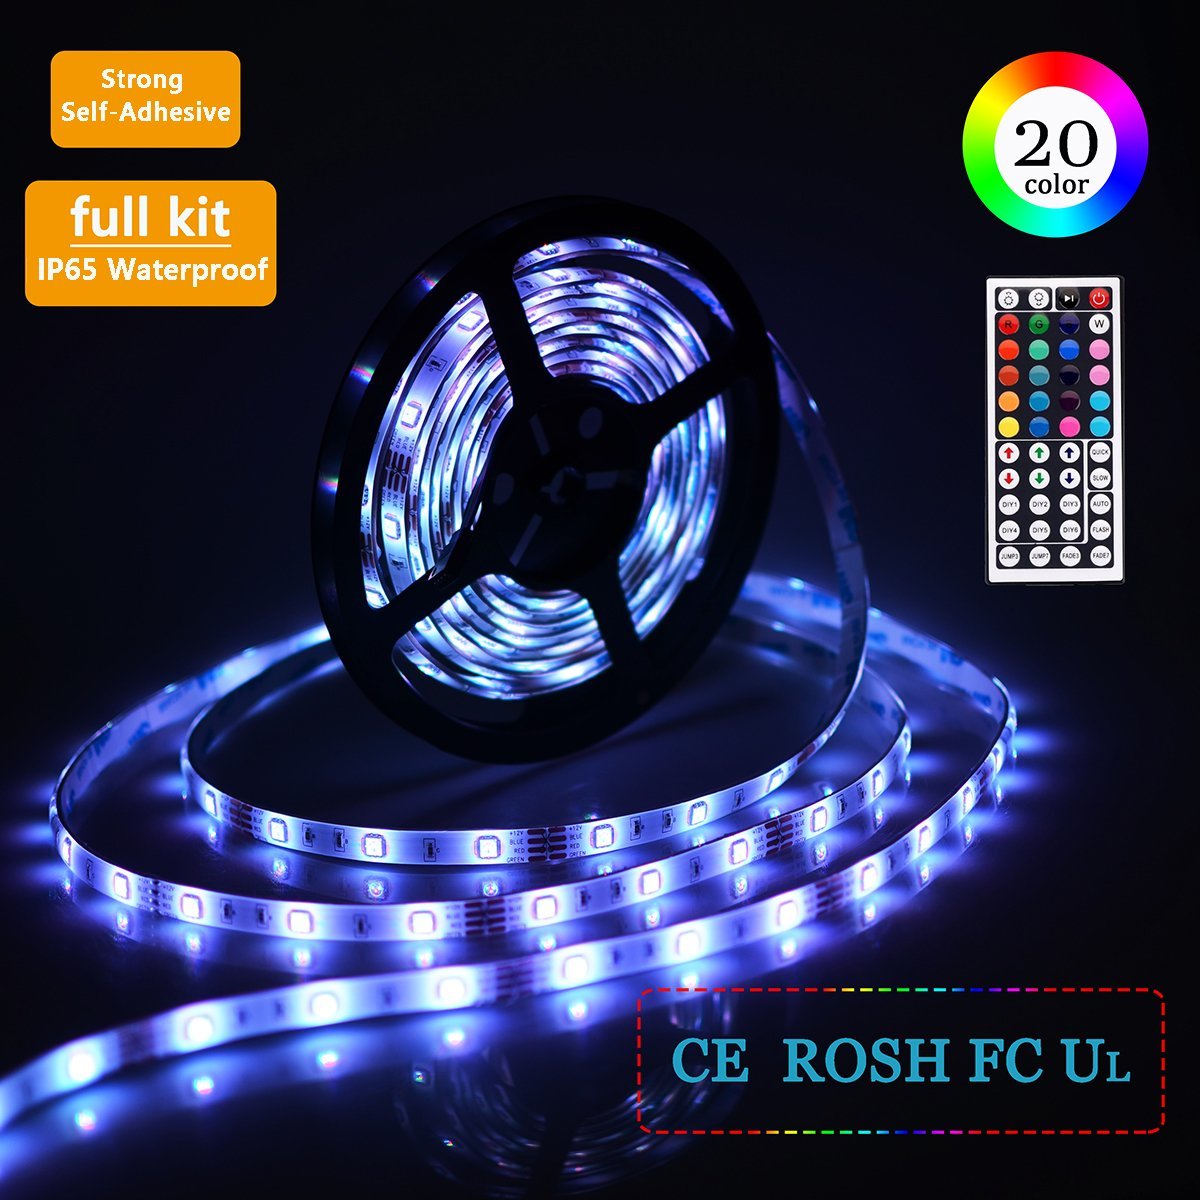 Simfonio RGB LED Strip Lights with Remote - LED Light Strip 5M Waterproof 150LEDs 5050SMD Led Light Strips - LED Lights Strip Kit with